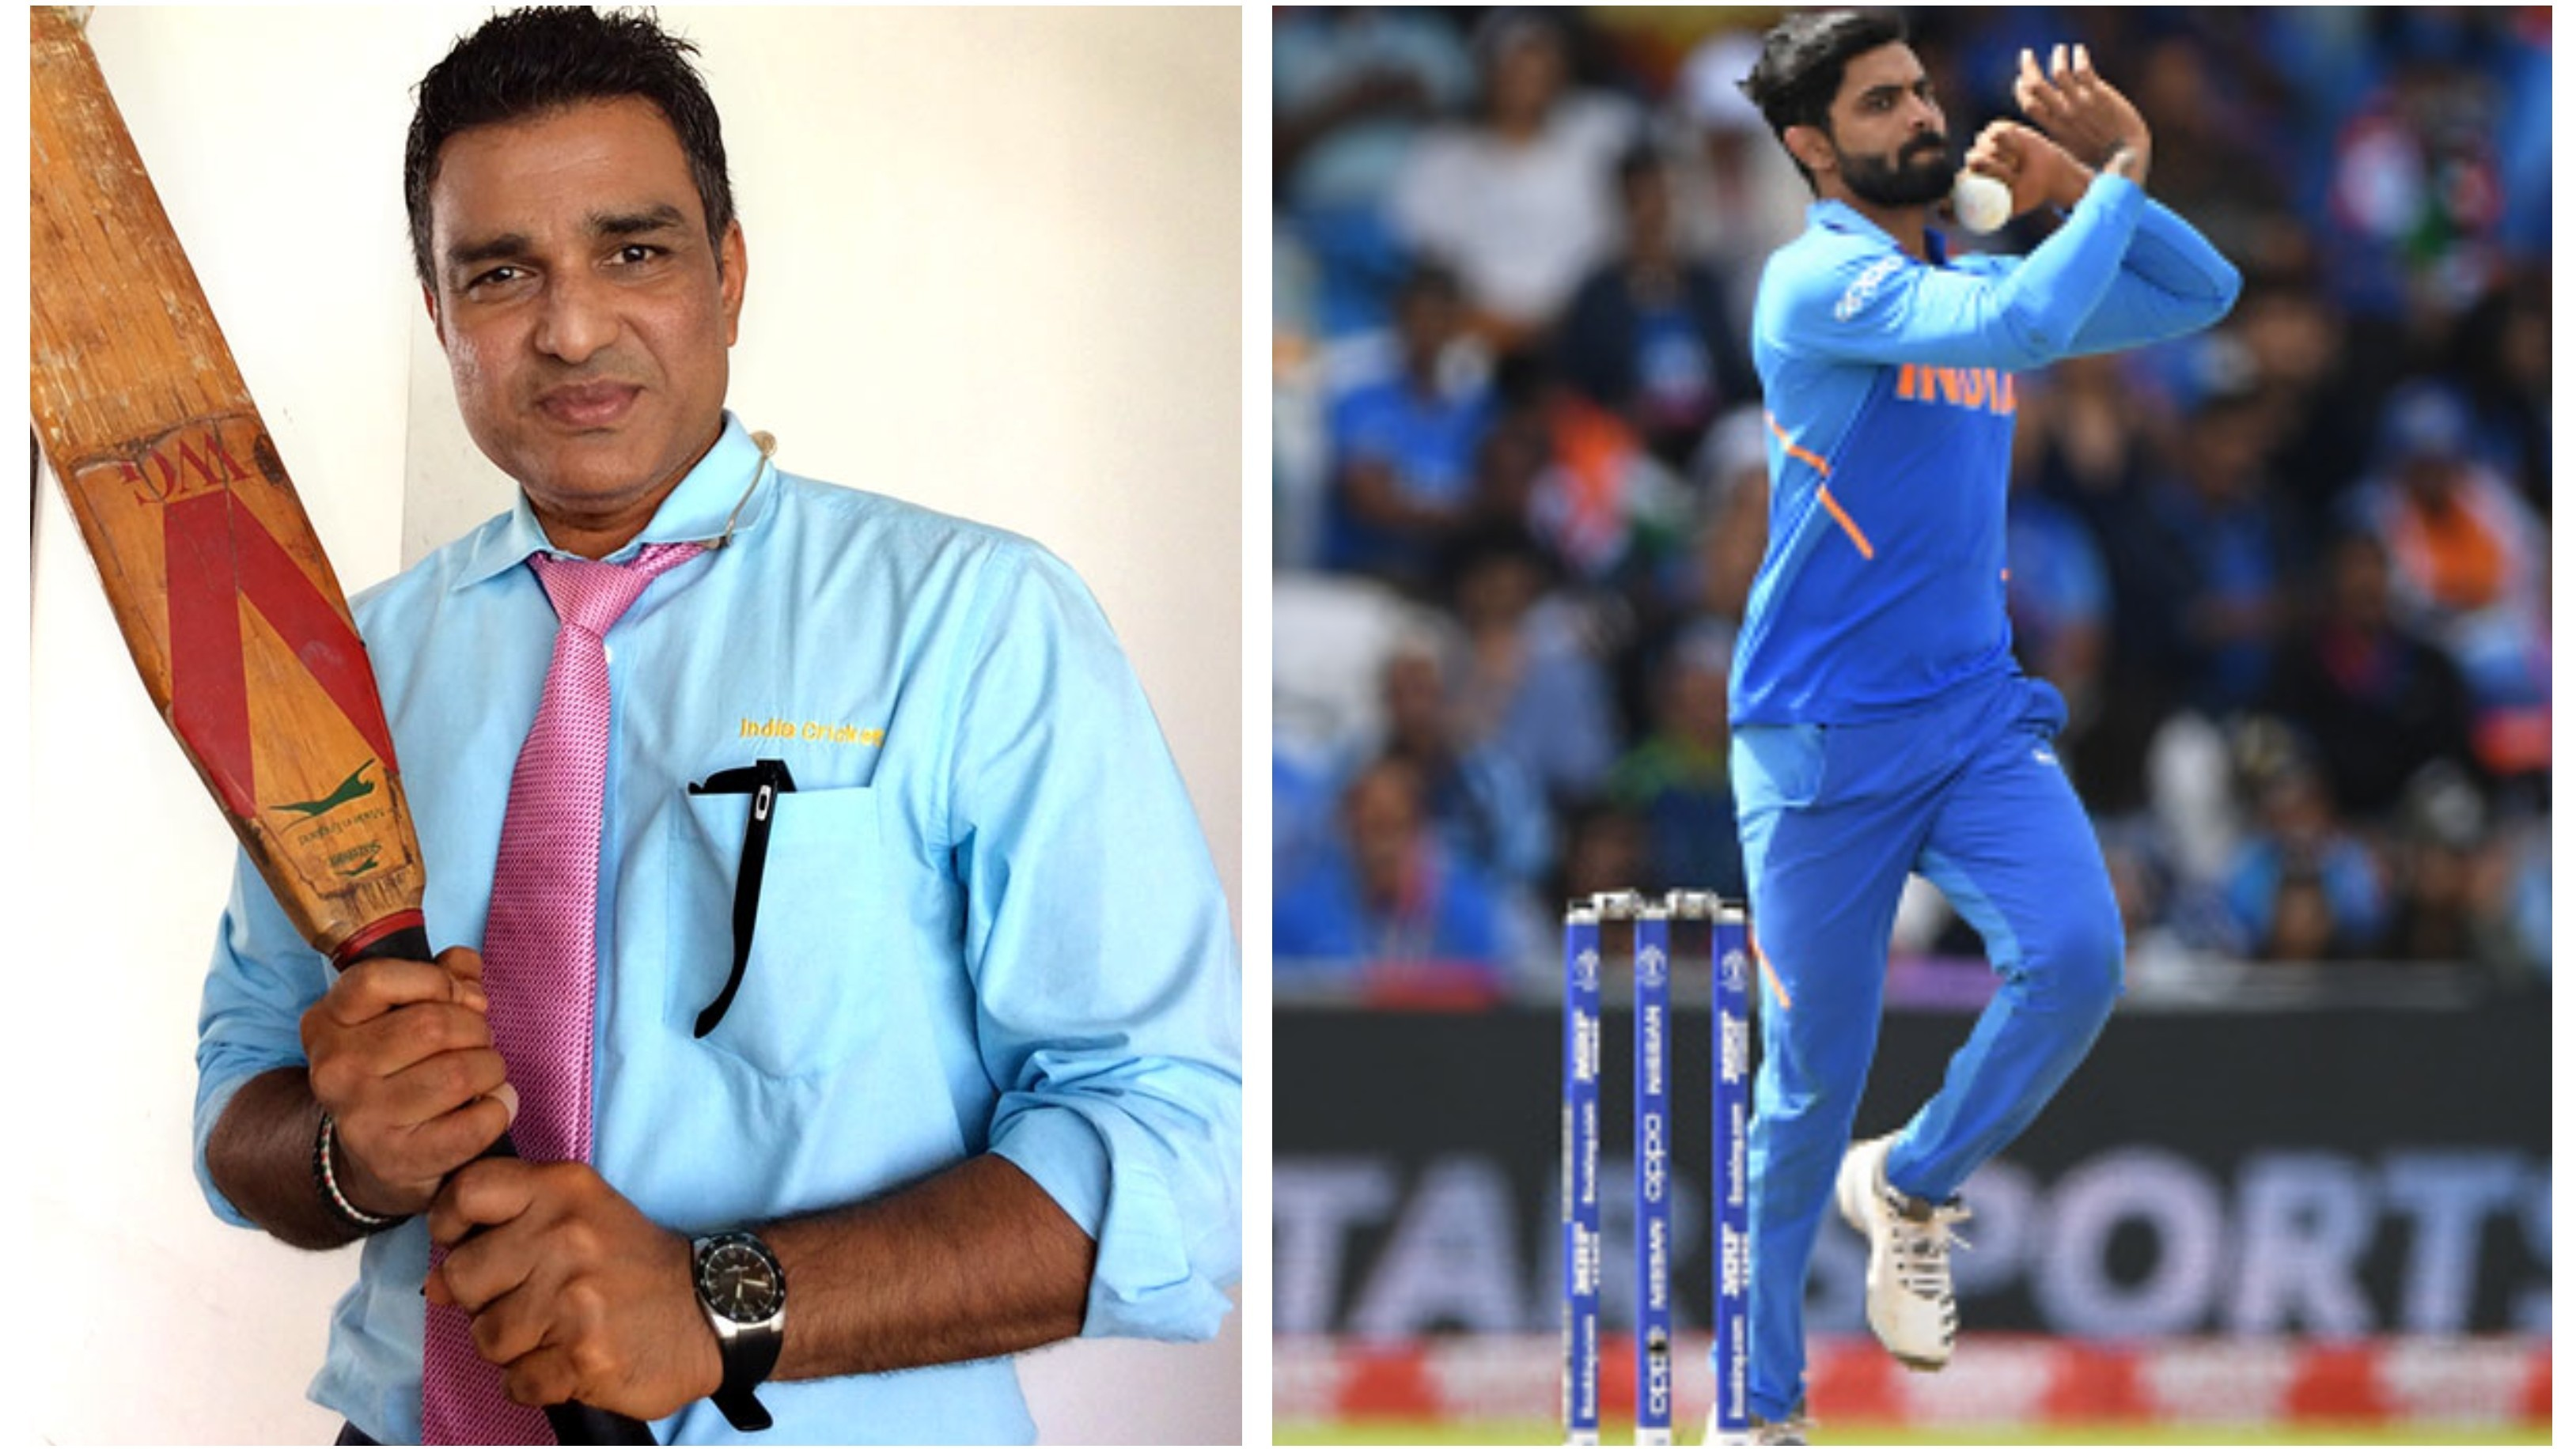 CWC 2019: Sanjay Manjrekar omits Ravindra Jadeja from his India playing XI for the semi-final